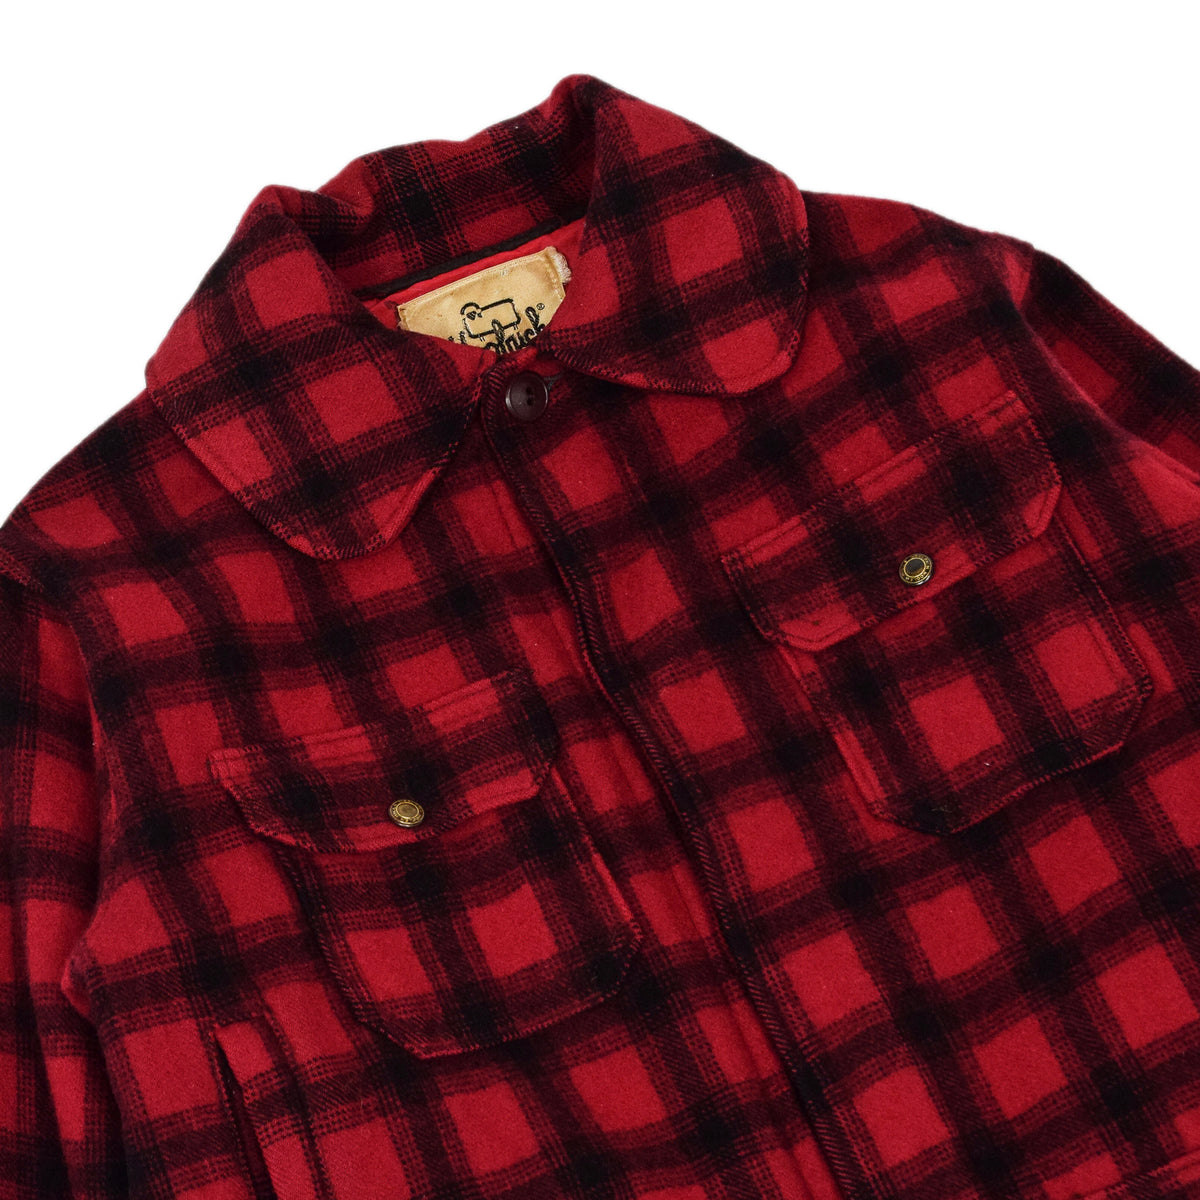 Vintage 70s Woolrich Woolen Mills Buffalo Plaid Mackinaw Hunting Jacket M chest